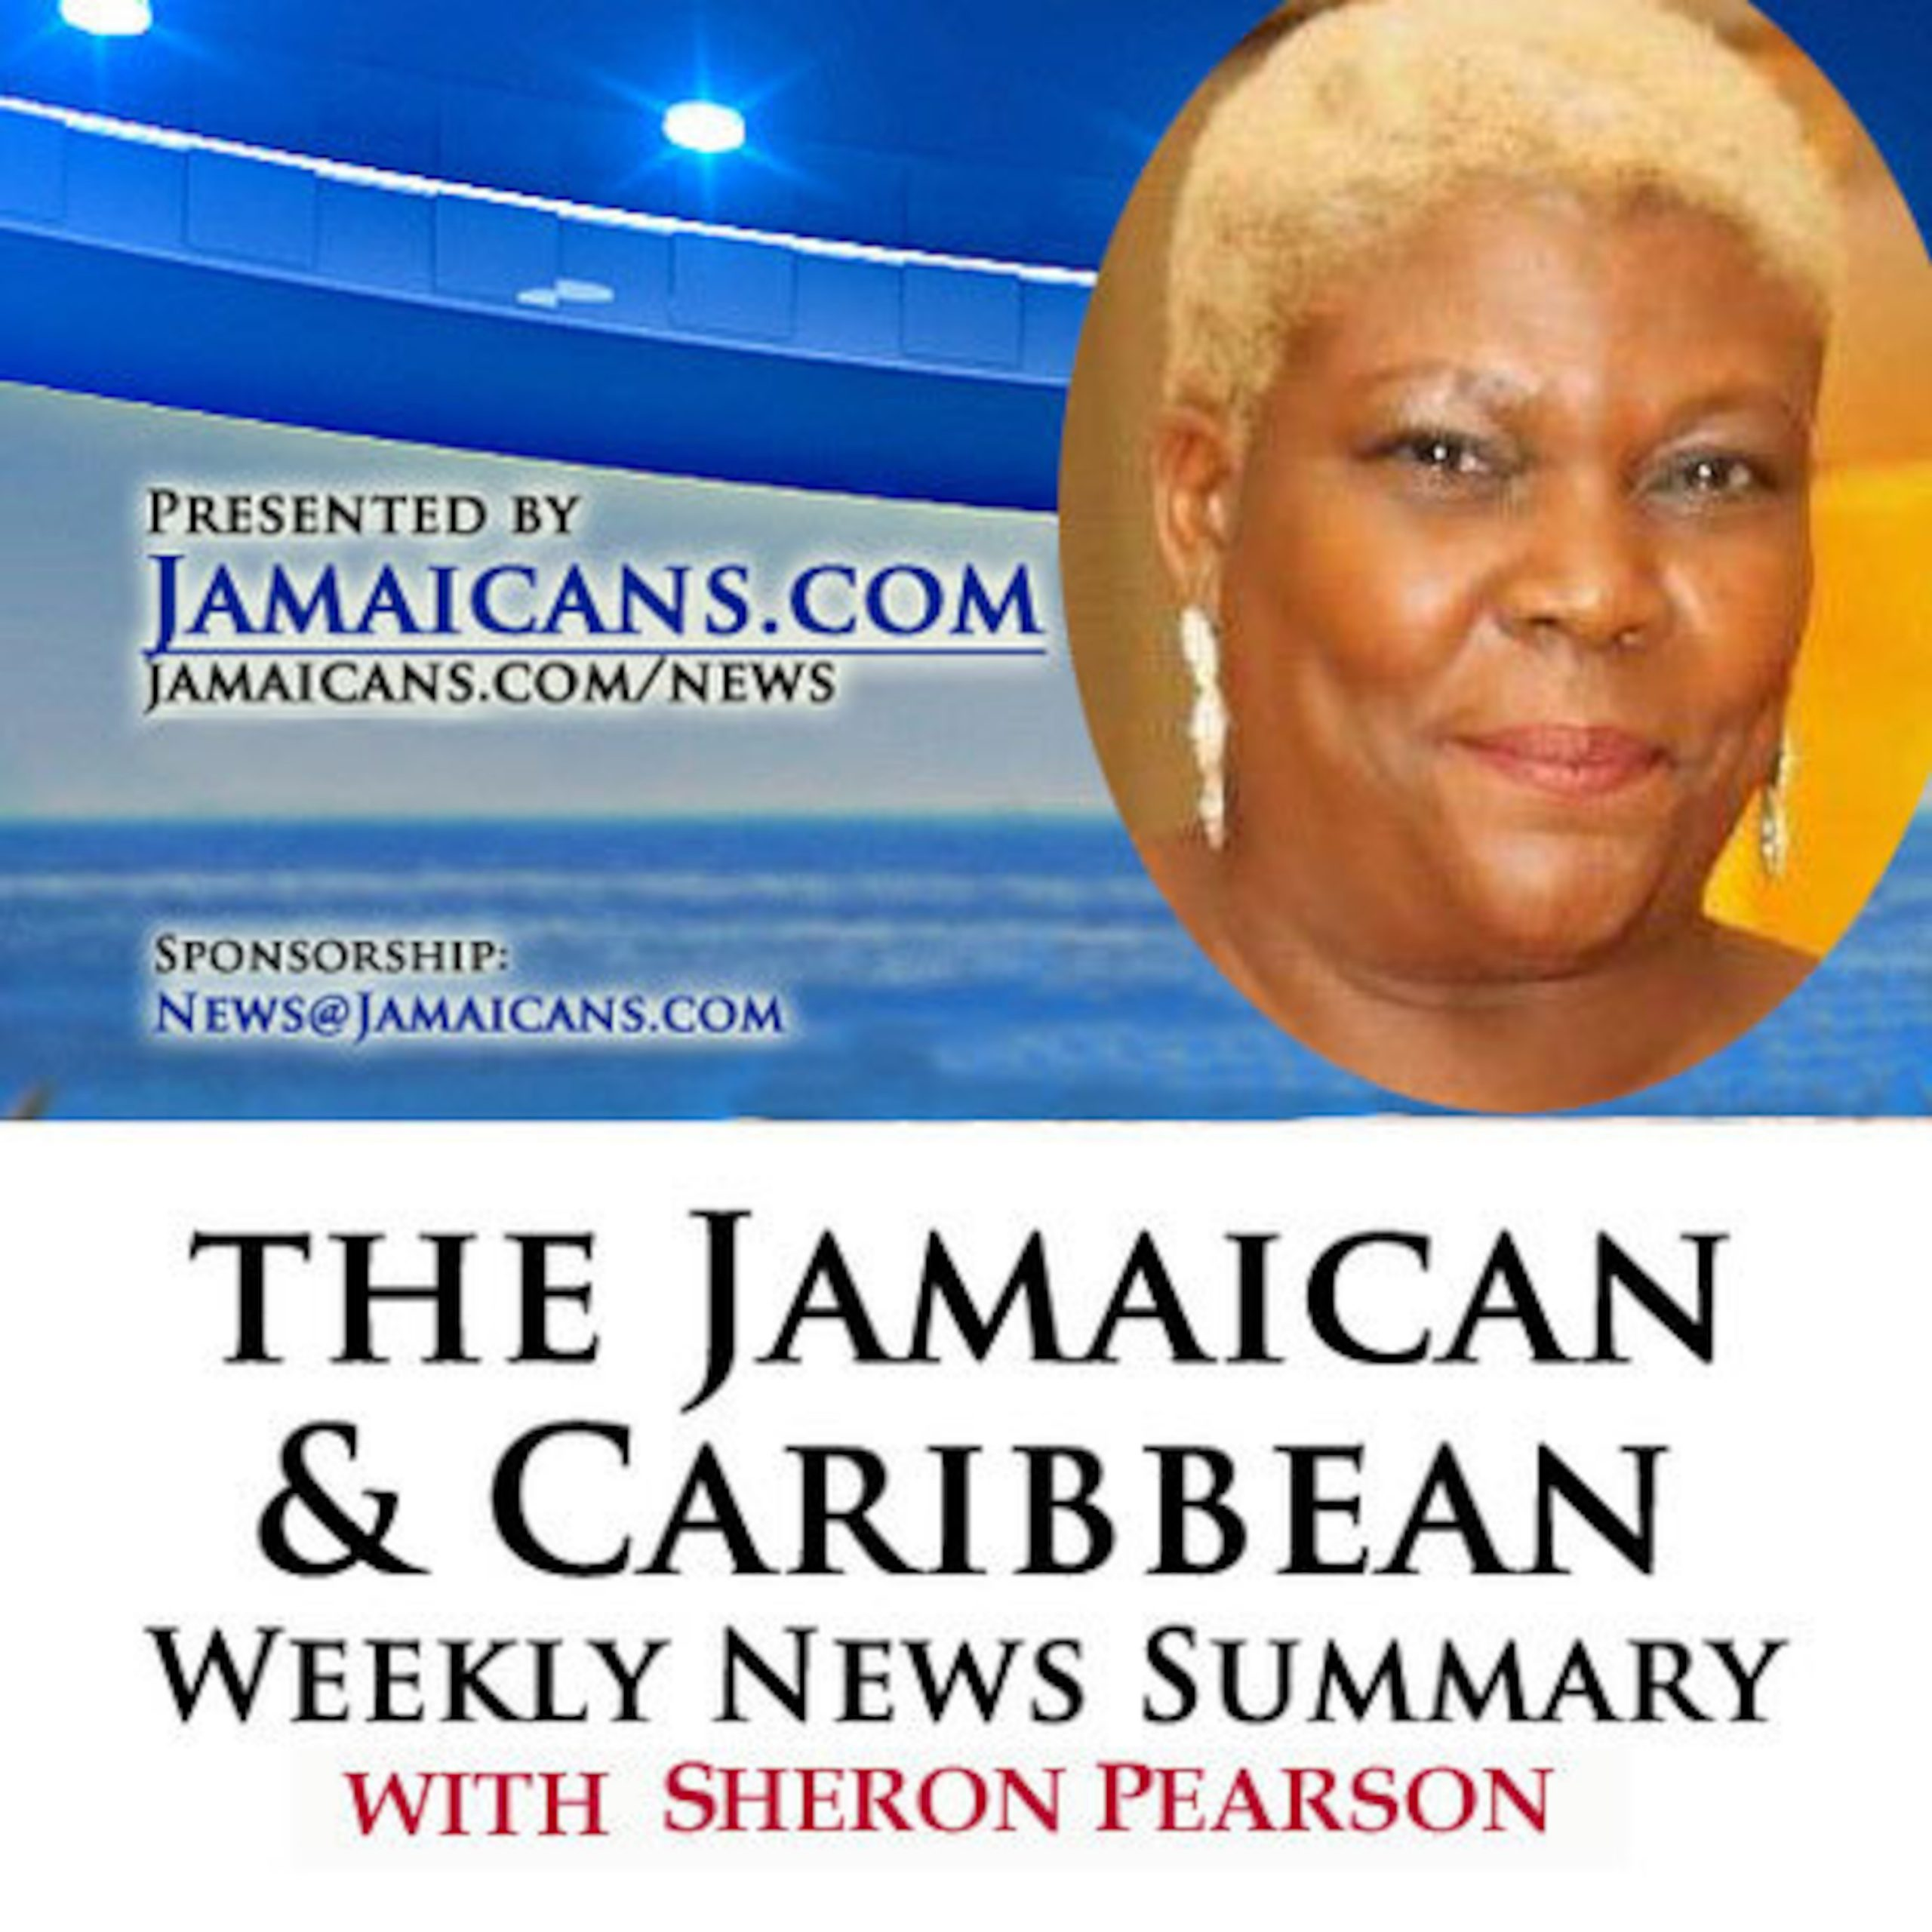 Listen to the Podcast of The Jamaica & Caribbean Weekly News Summary for the week ending January 17 2020